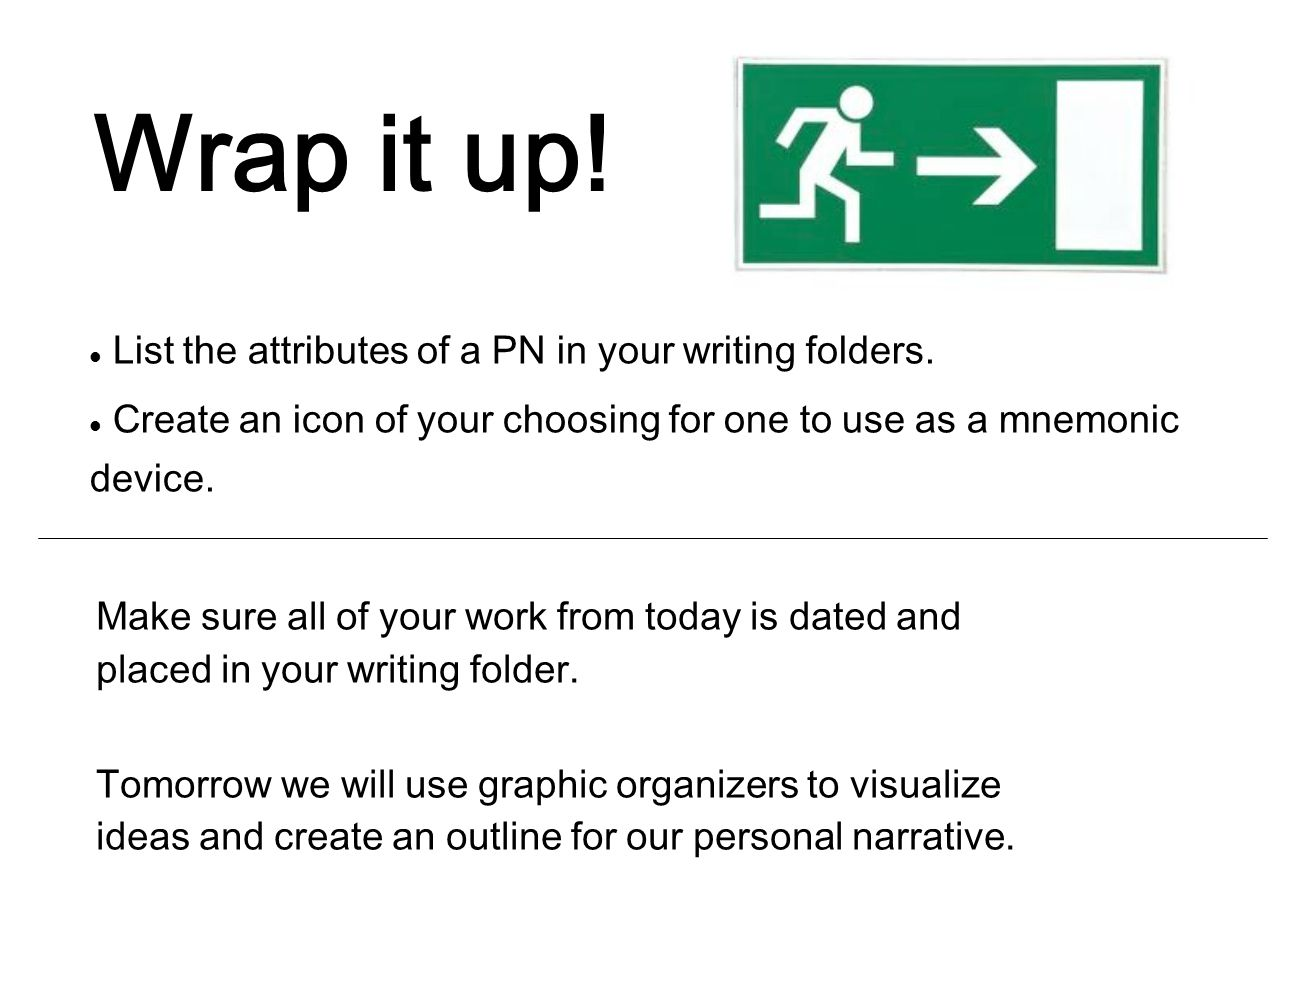 List the attributes of a PN in your writing folders.